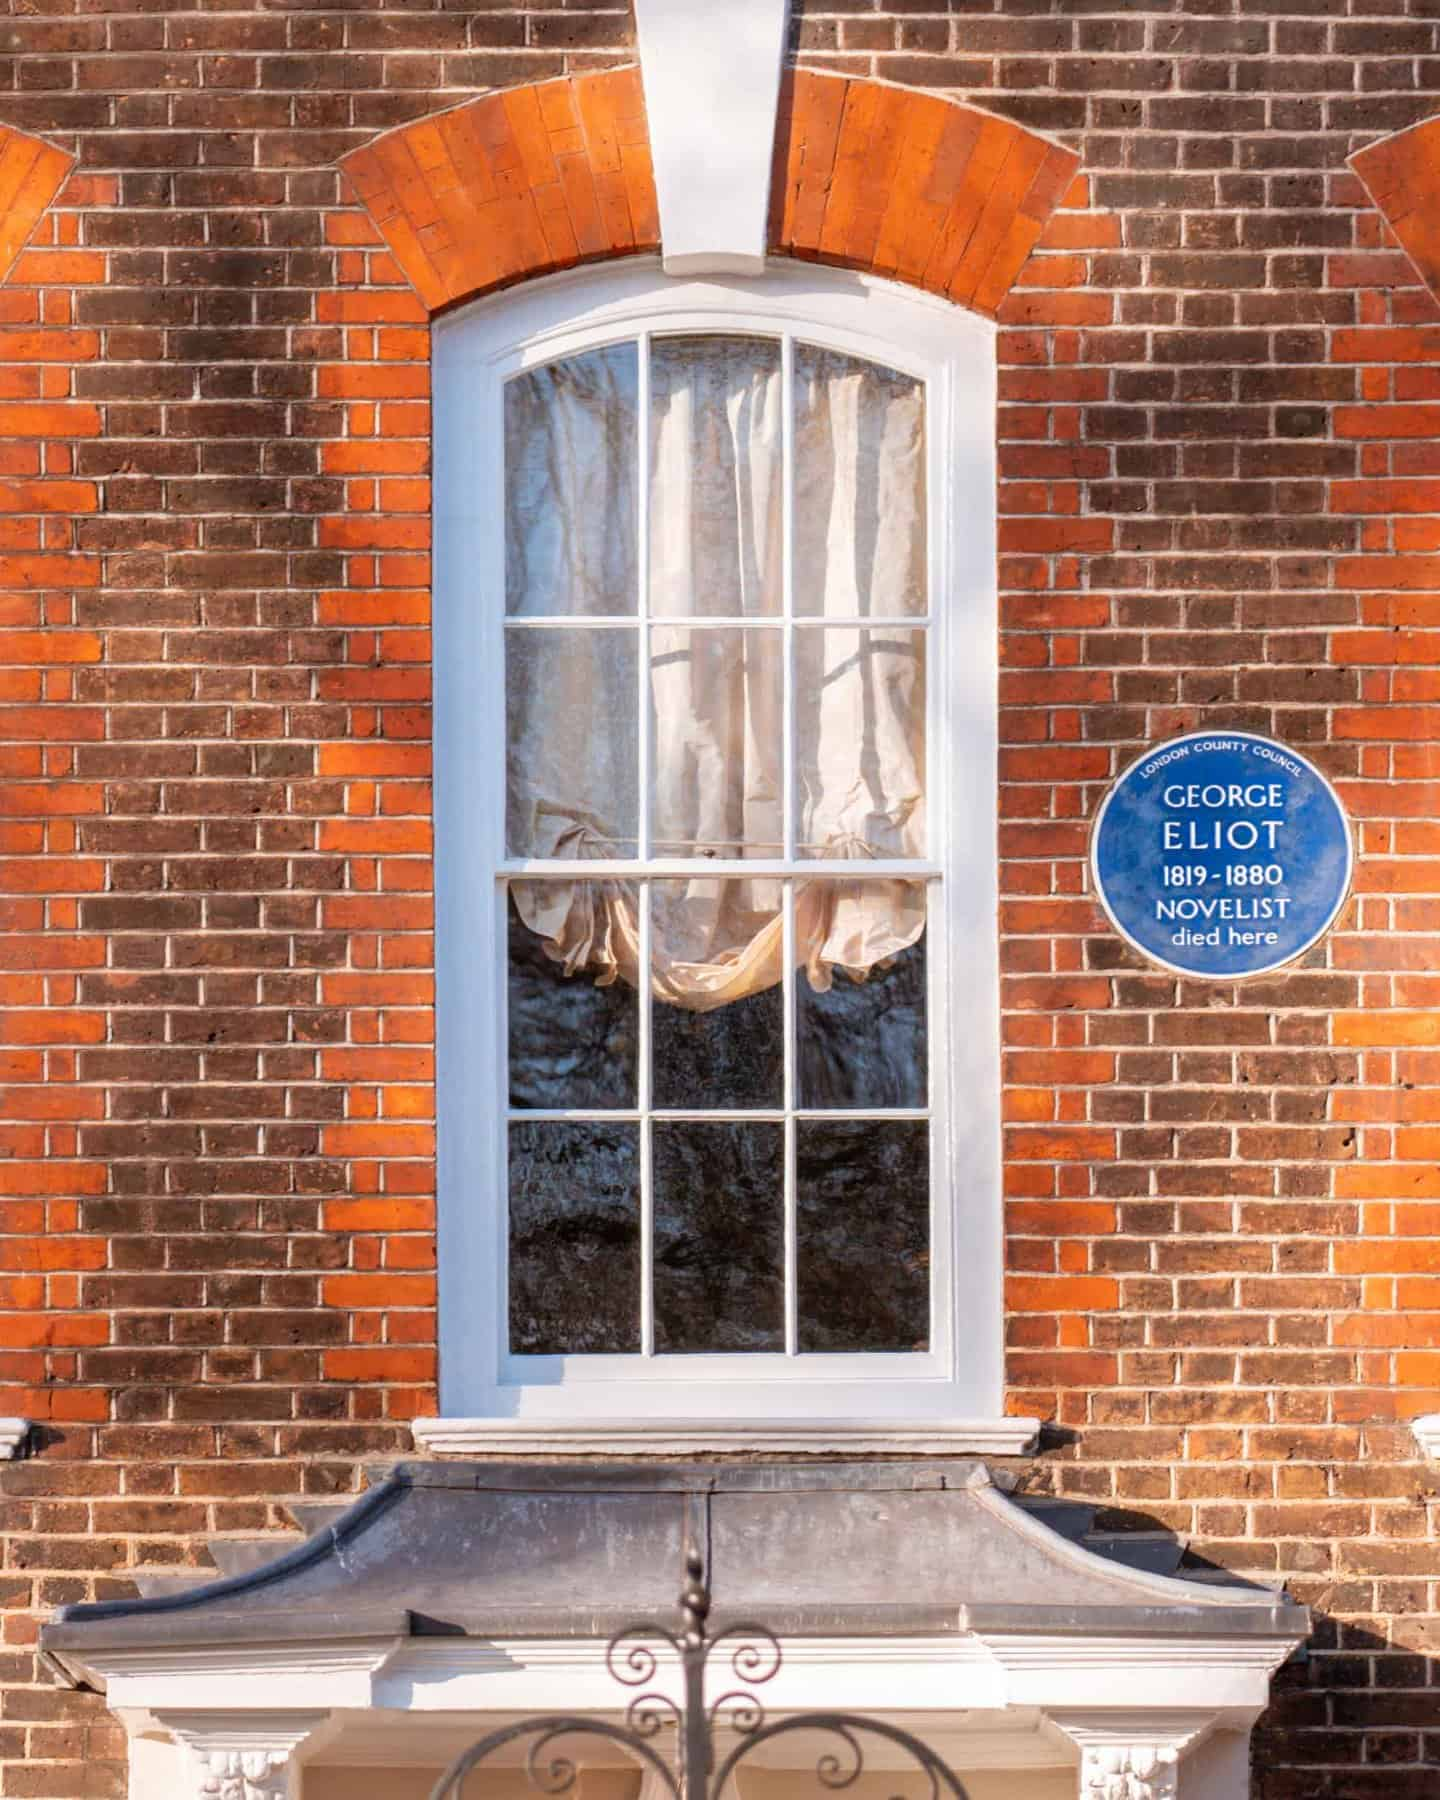 Close up image showing English heritage blue plaque for novelist George Eliot in Cheyne Walk, famous London street